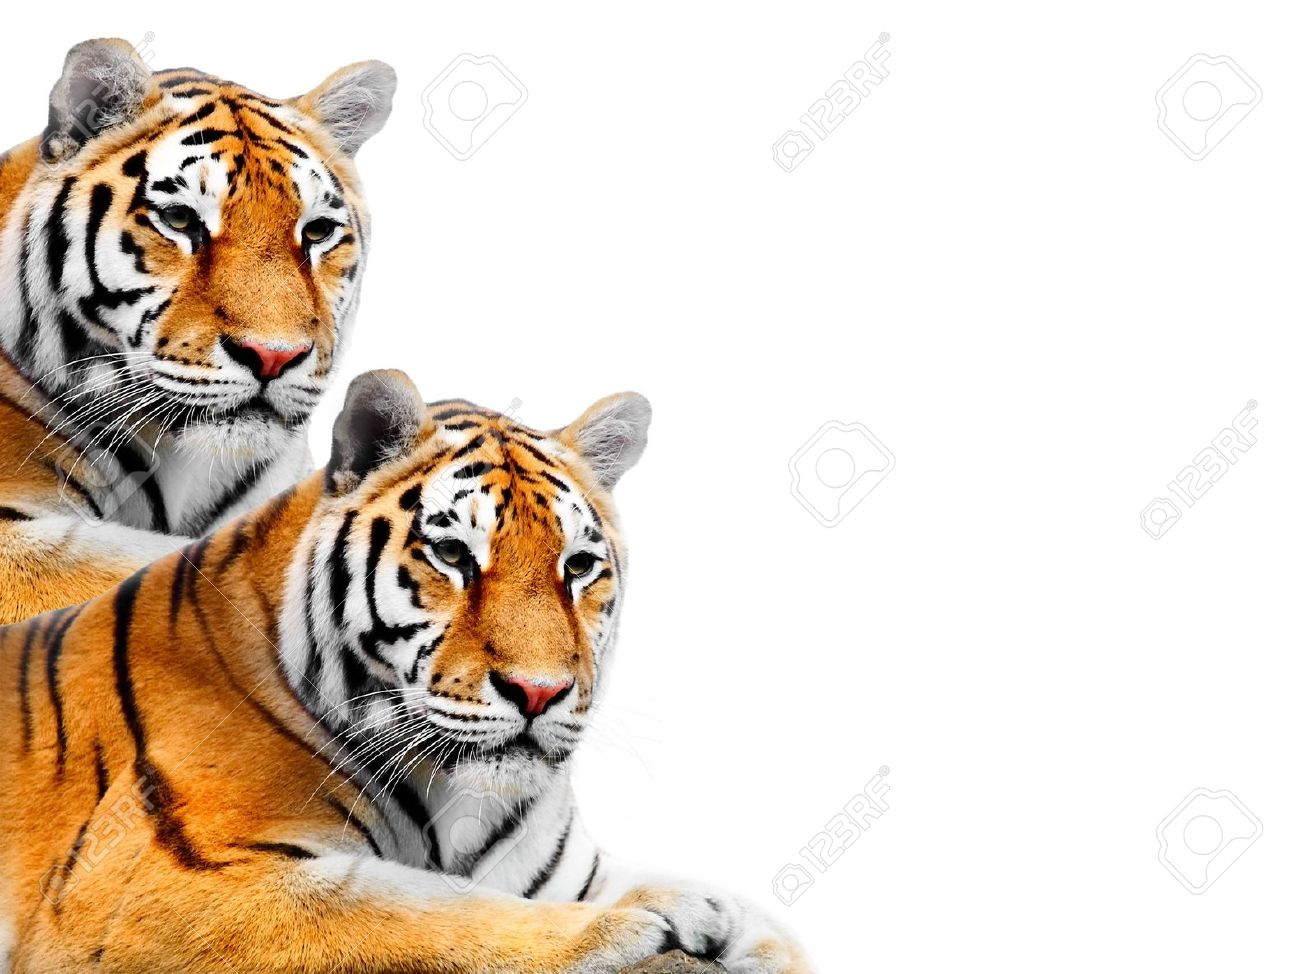 56 background tiger Pictures